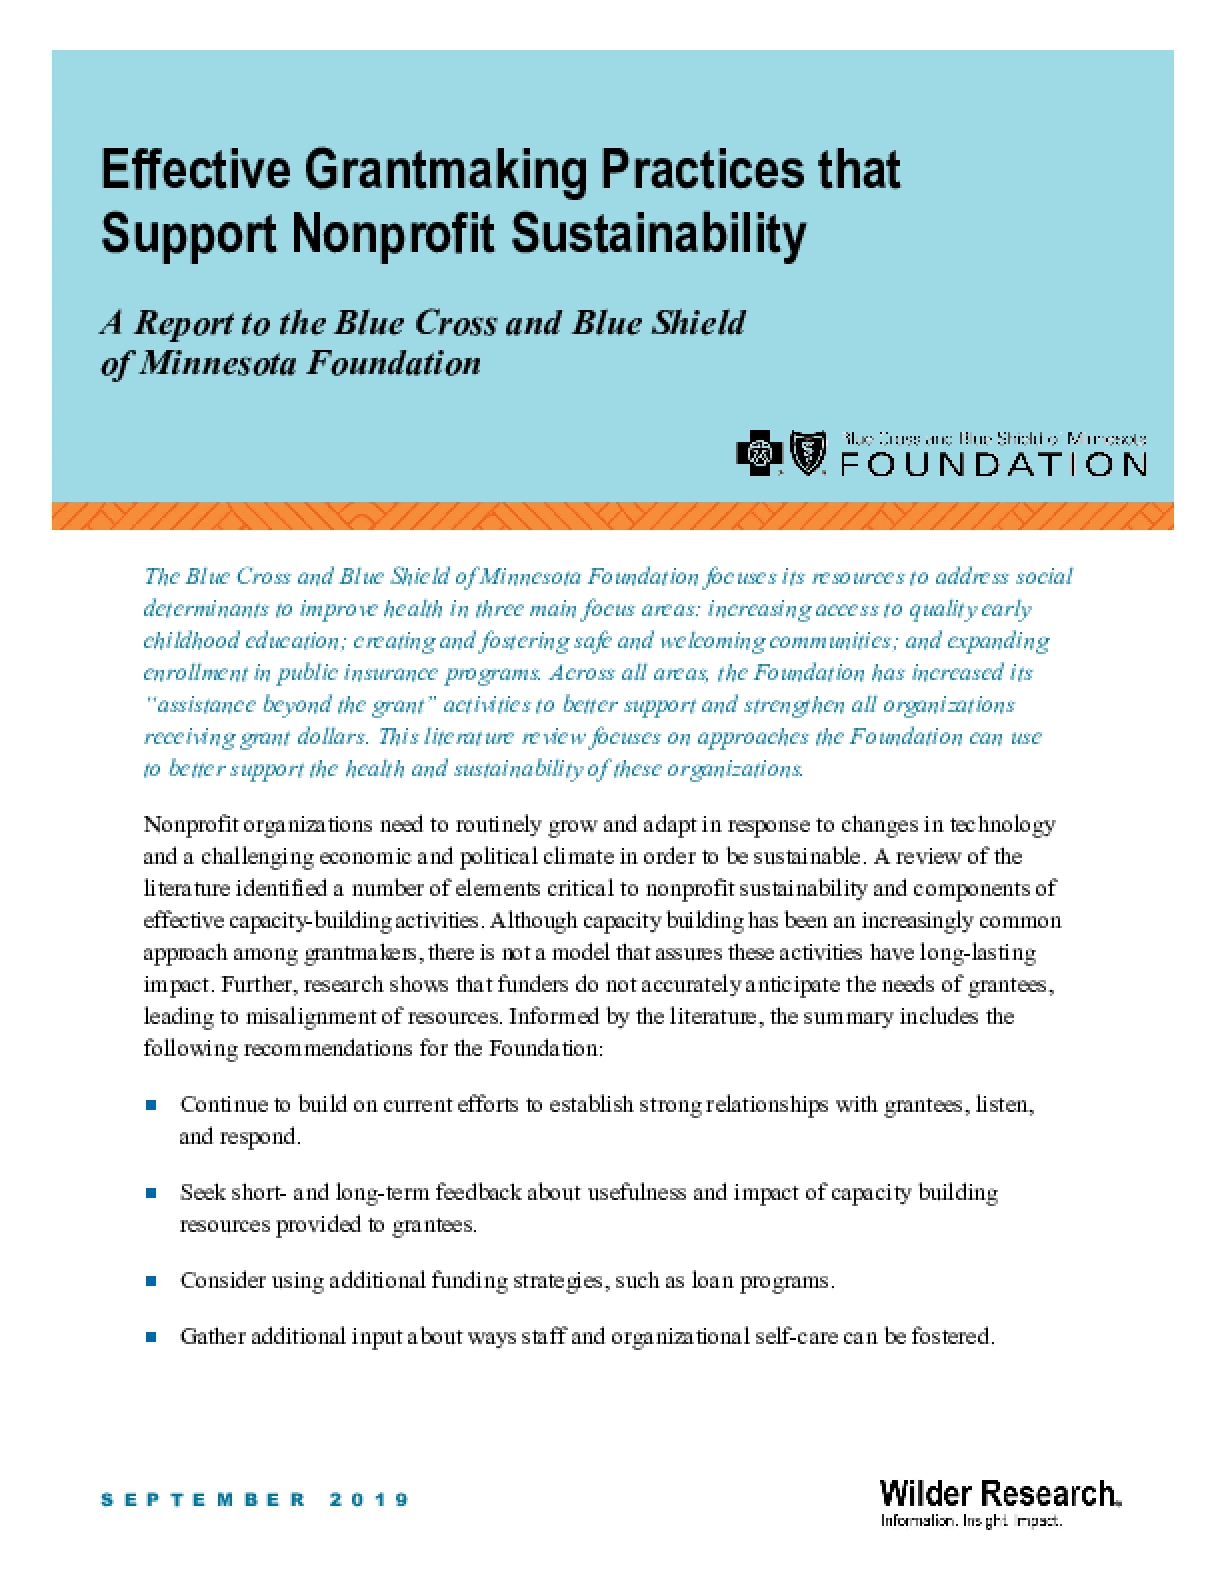 Effective Grantmaking Practices that Support Nonprofit Sustainability